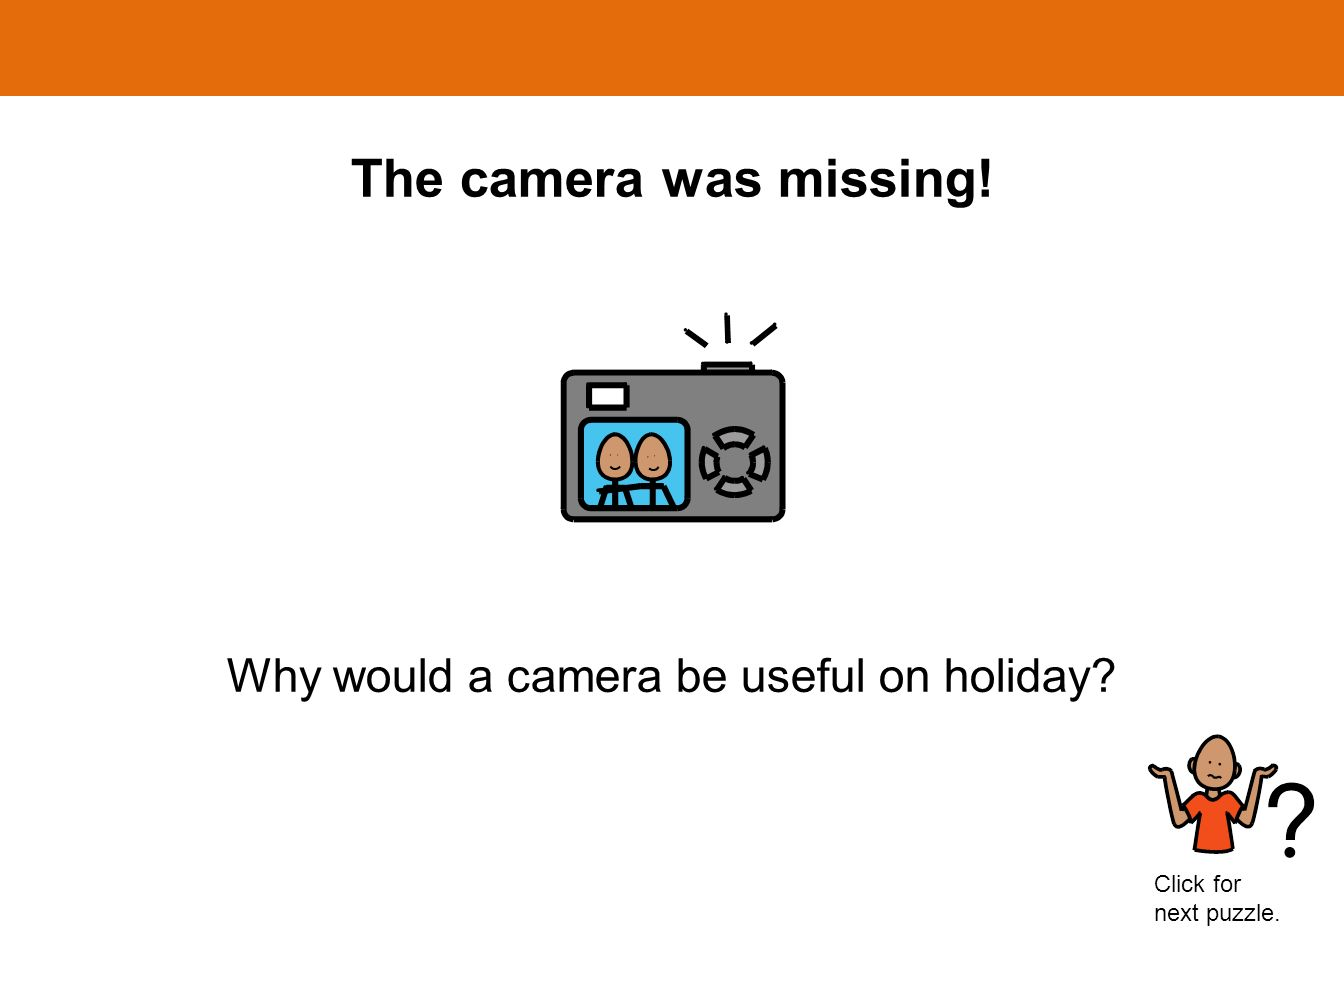 The camera was missing! Why would a camera be useful on holiday? Click for next puzzle.